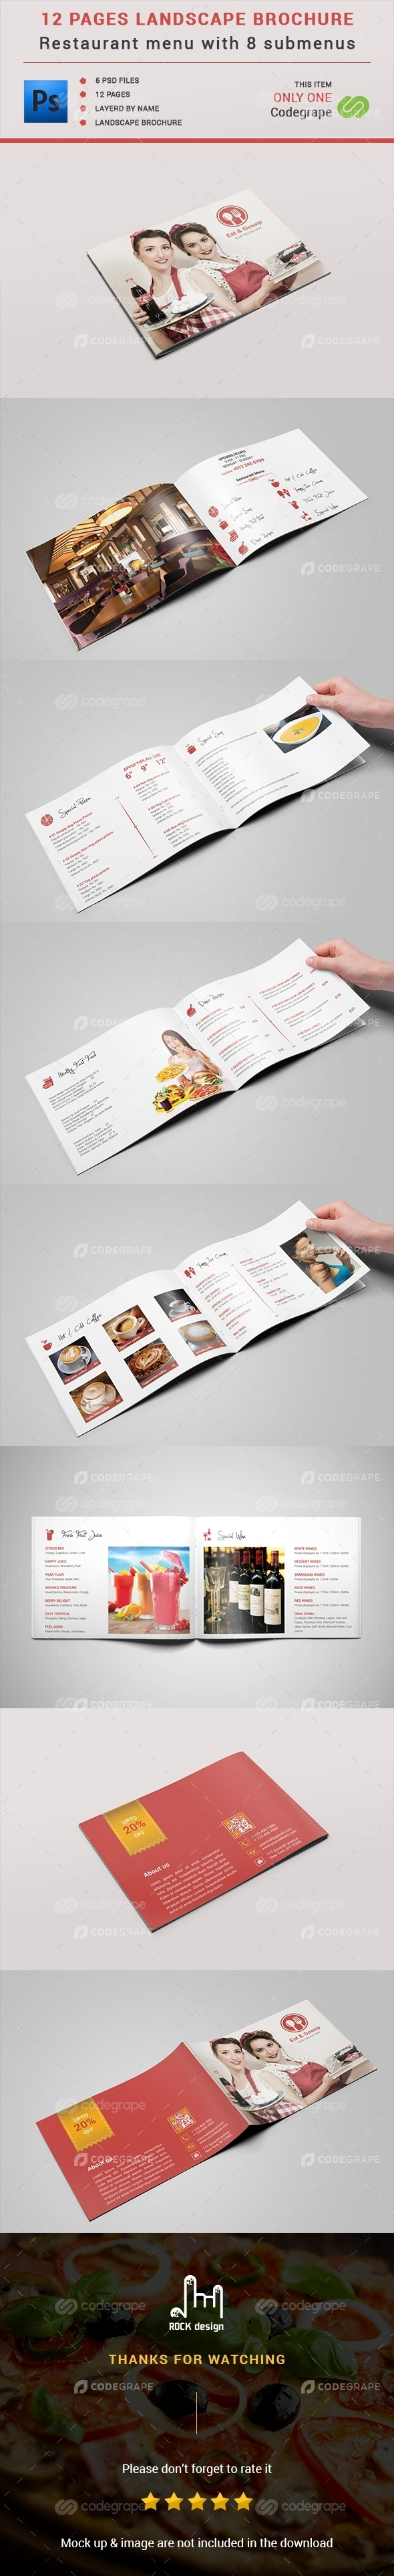 Restaurant Menu - 12 Pages